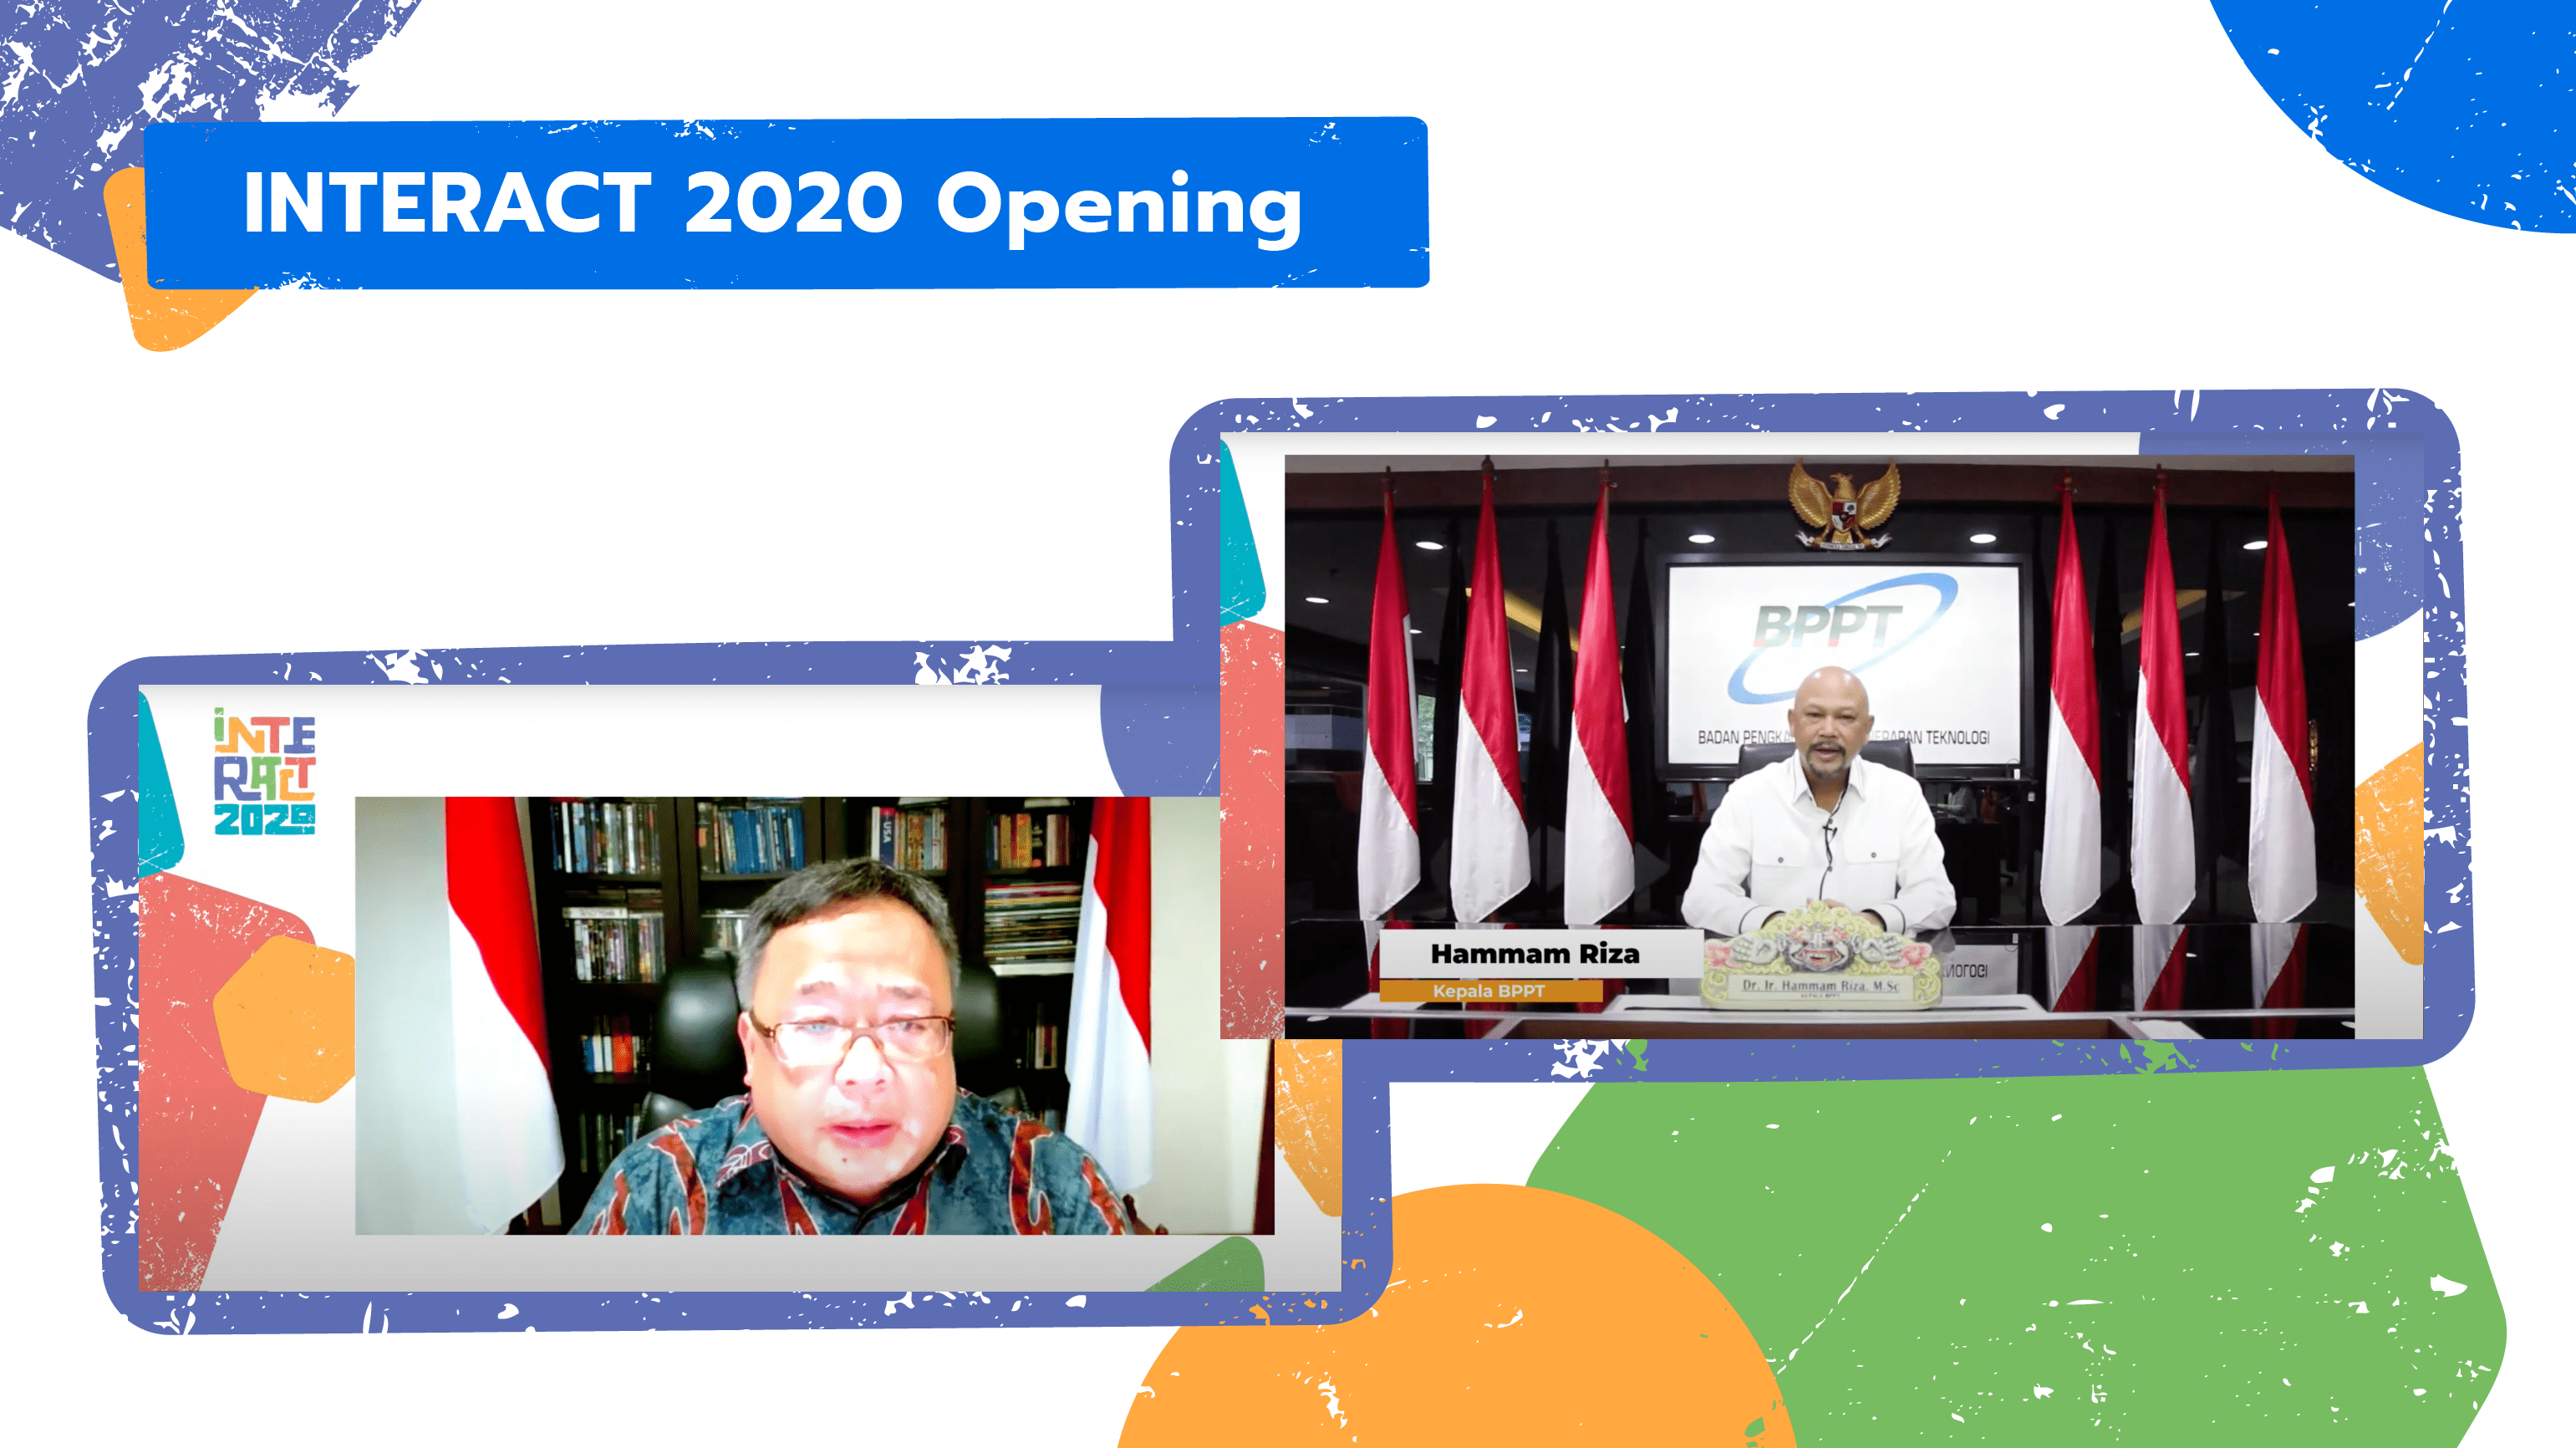 Indonesian Minister of Research and Innovation Bambang Brodjonegoro and the Agency for Assessment and Application of Technology (BPPT) head Hammam Riza open the INTERACT 2020 event with their remarks on AI technology.